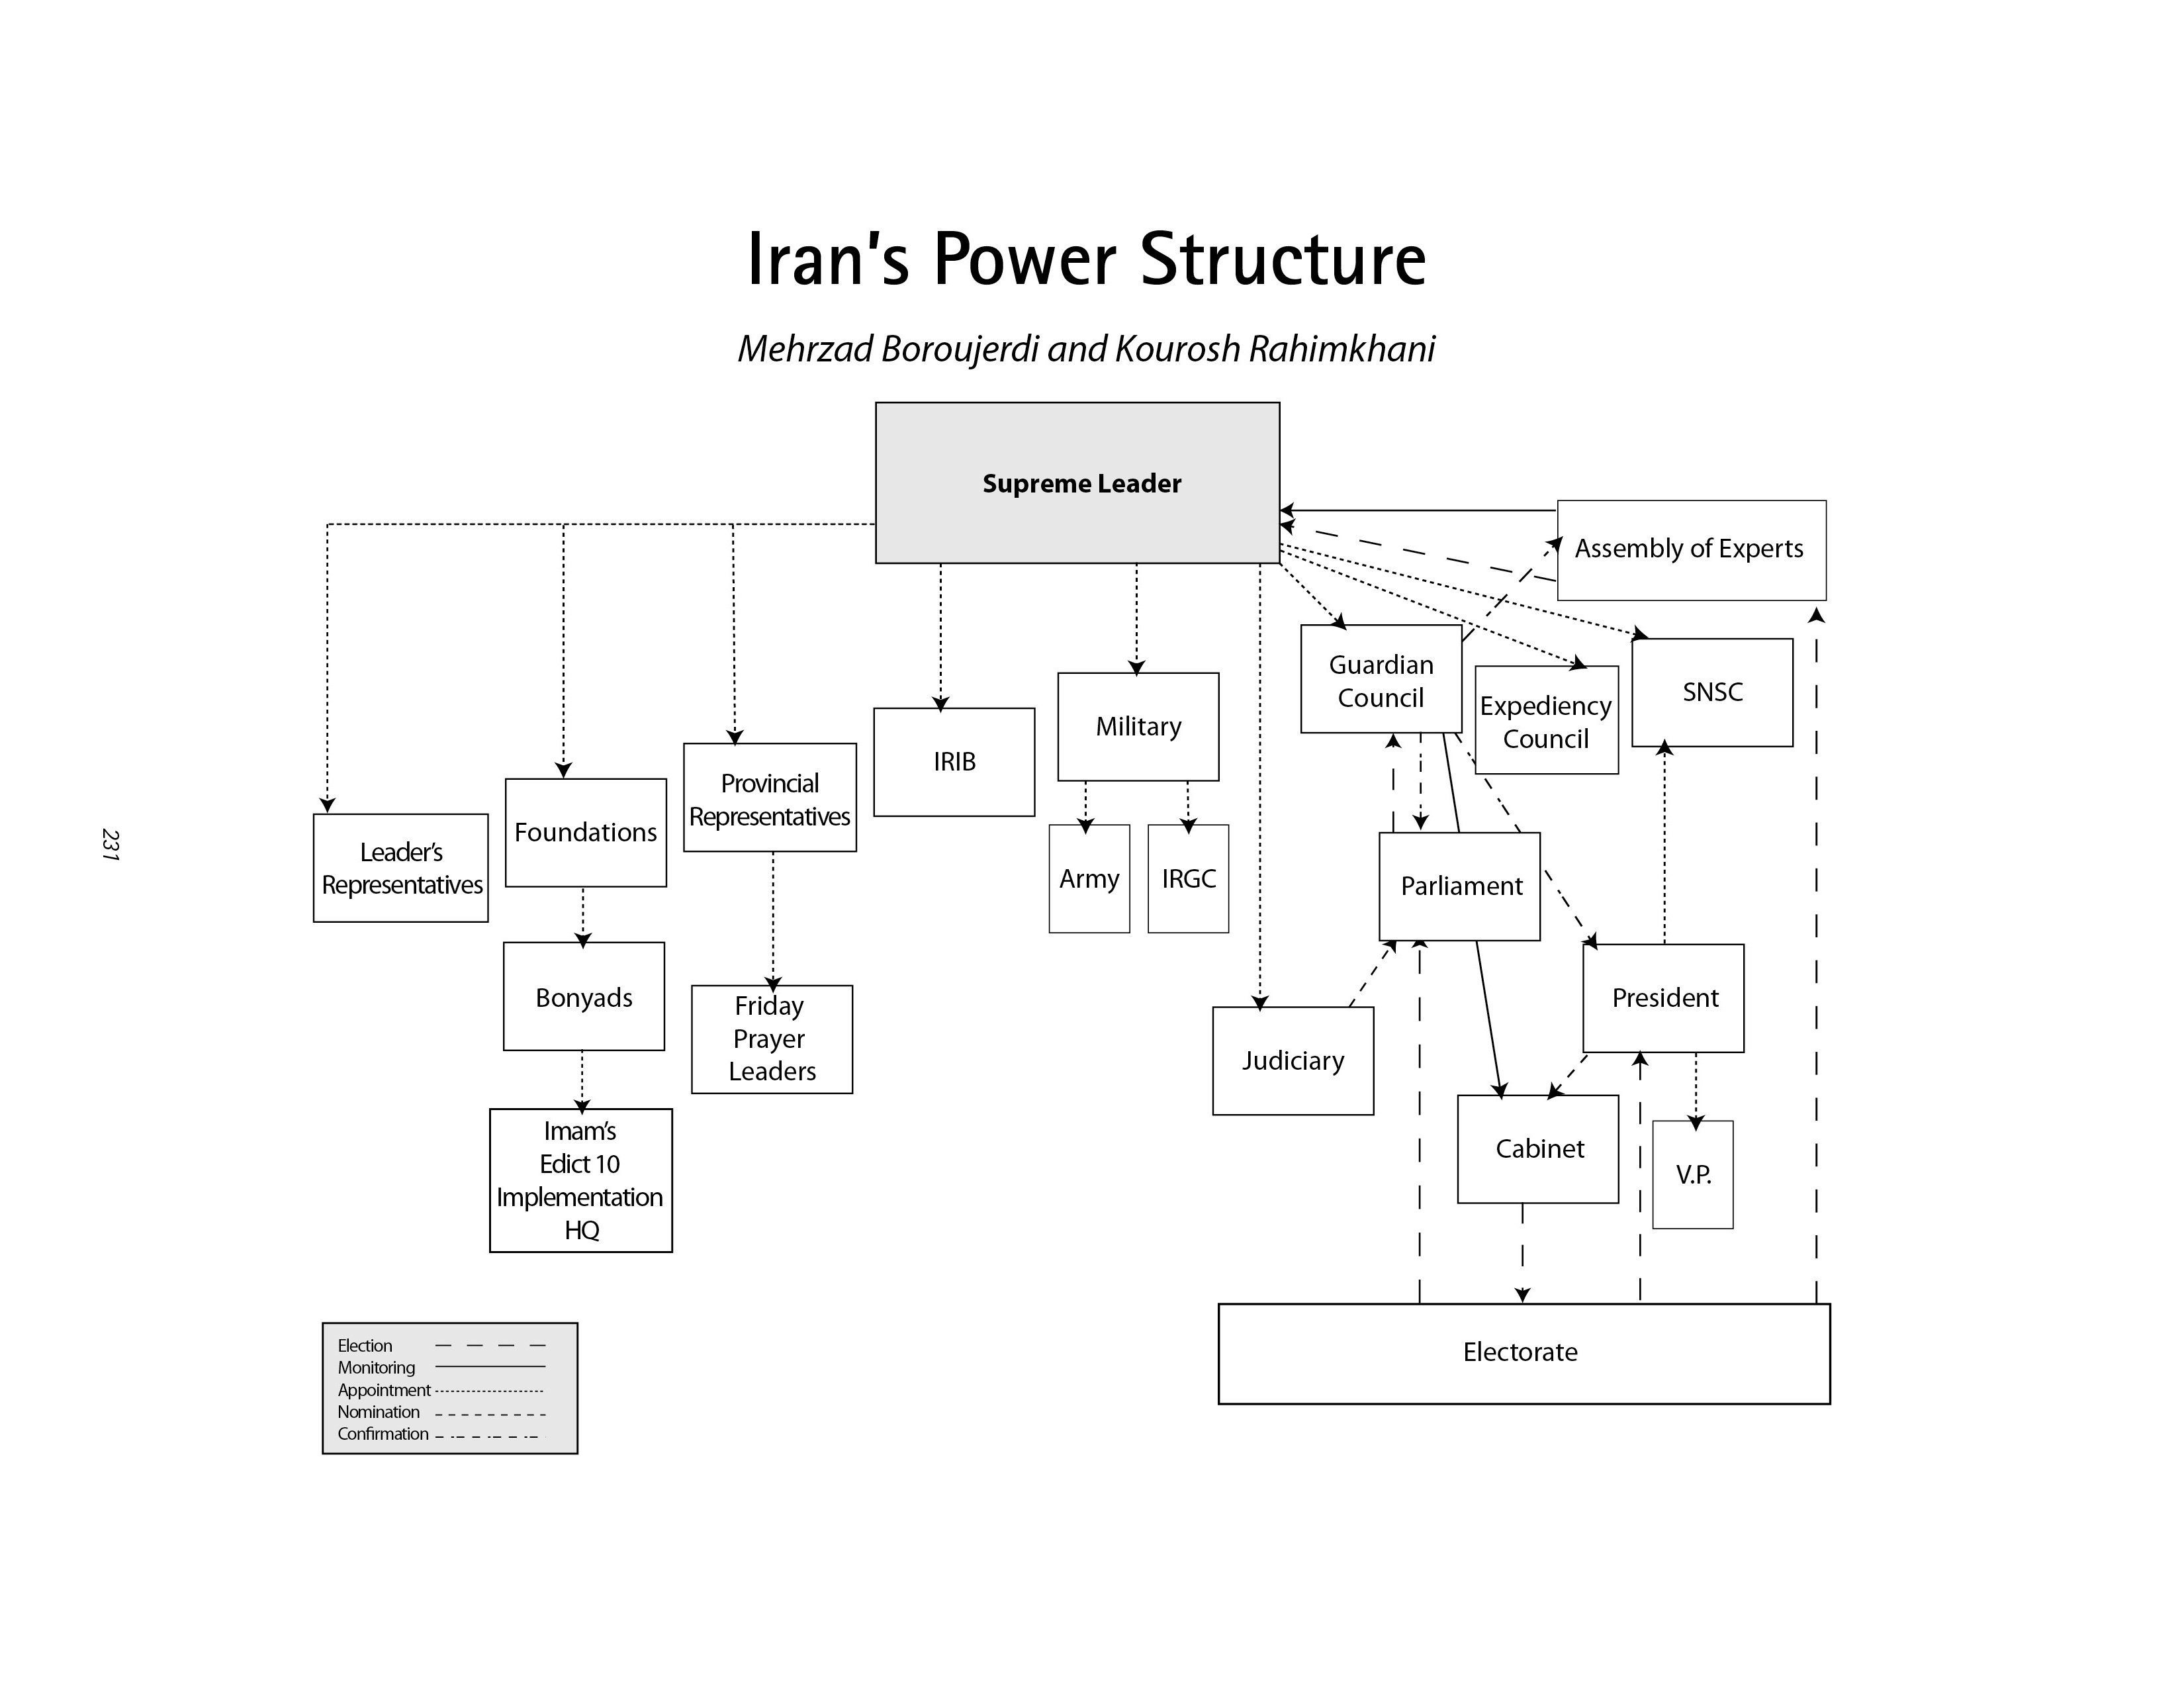 Iran's Power Structure chart